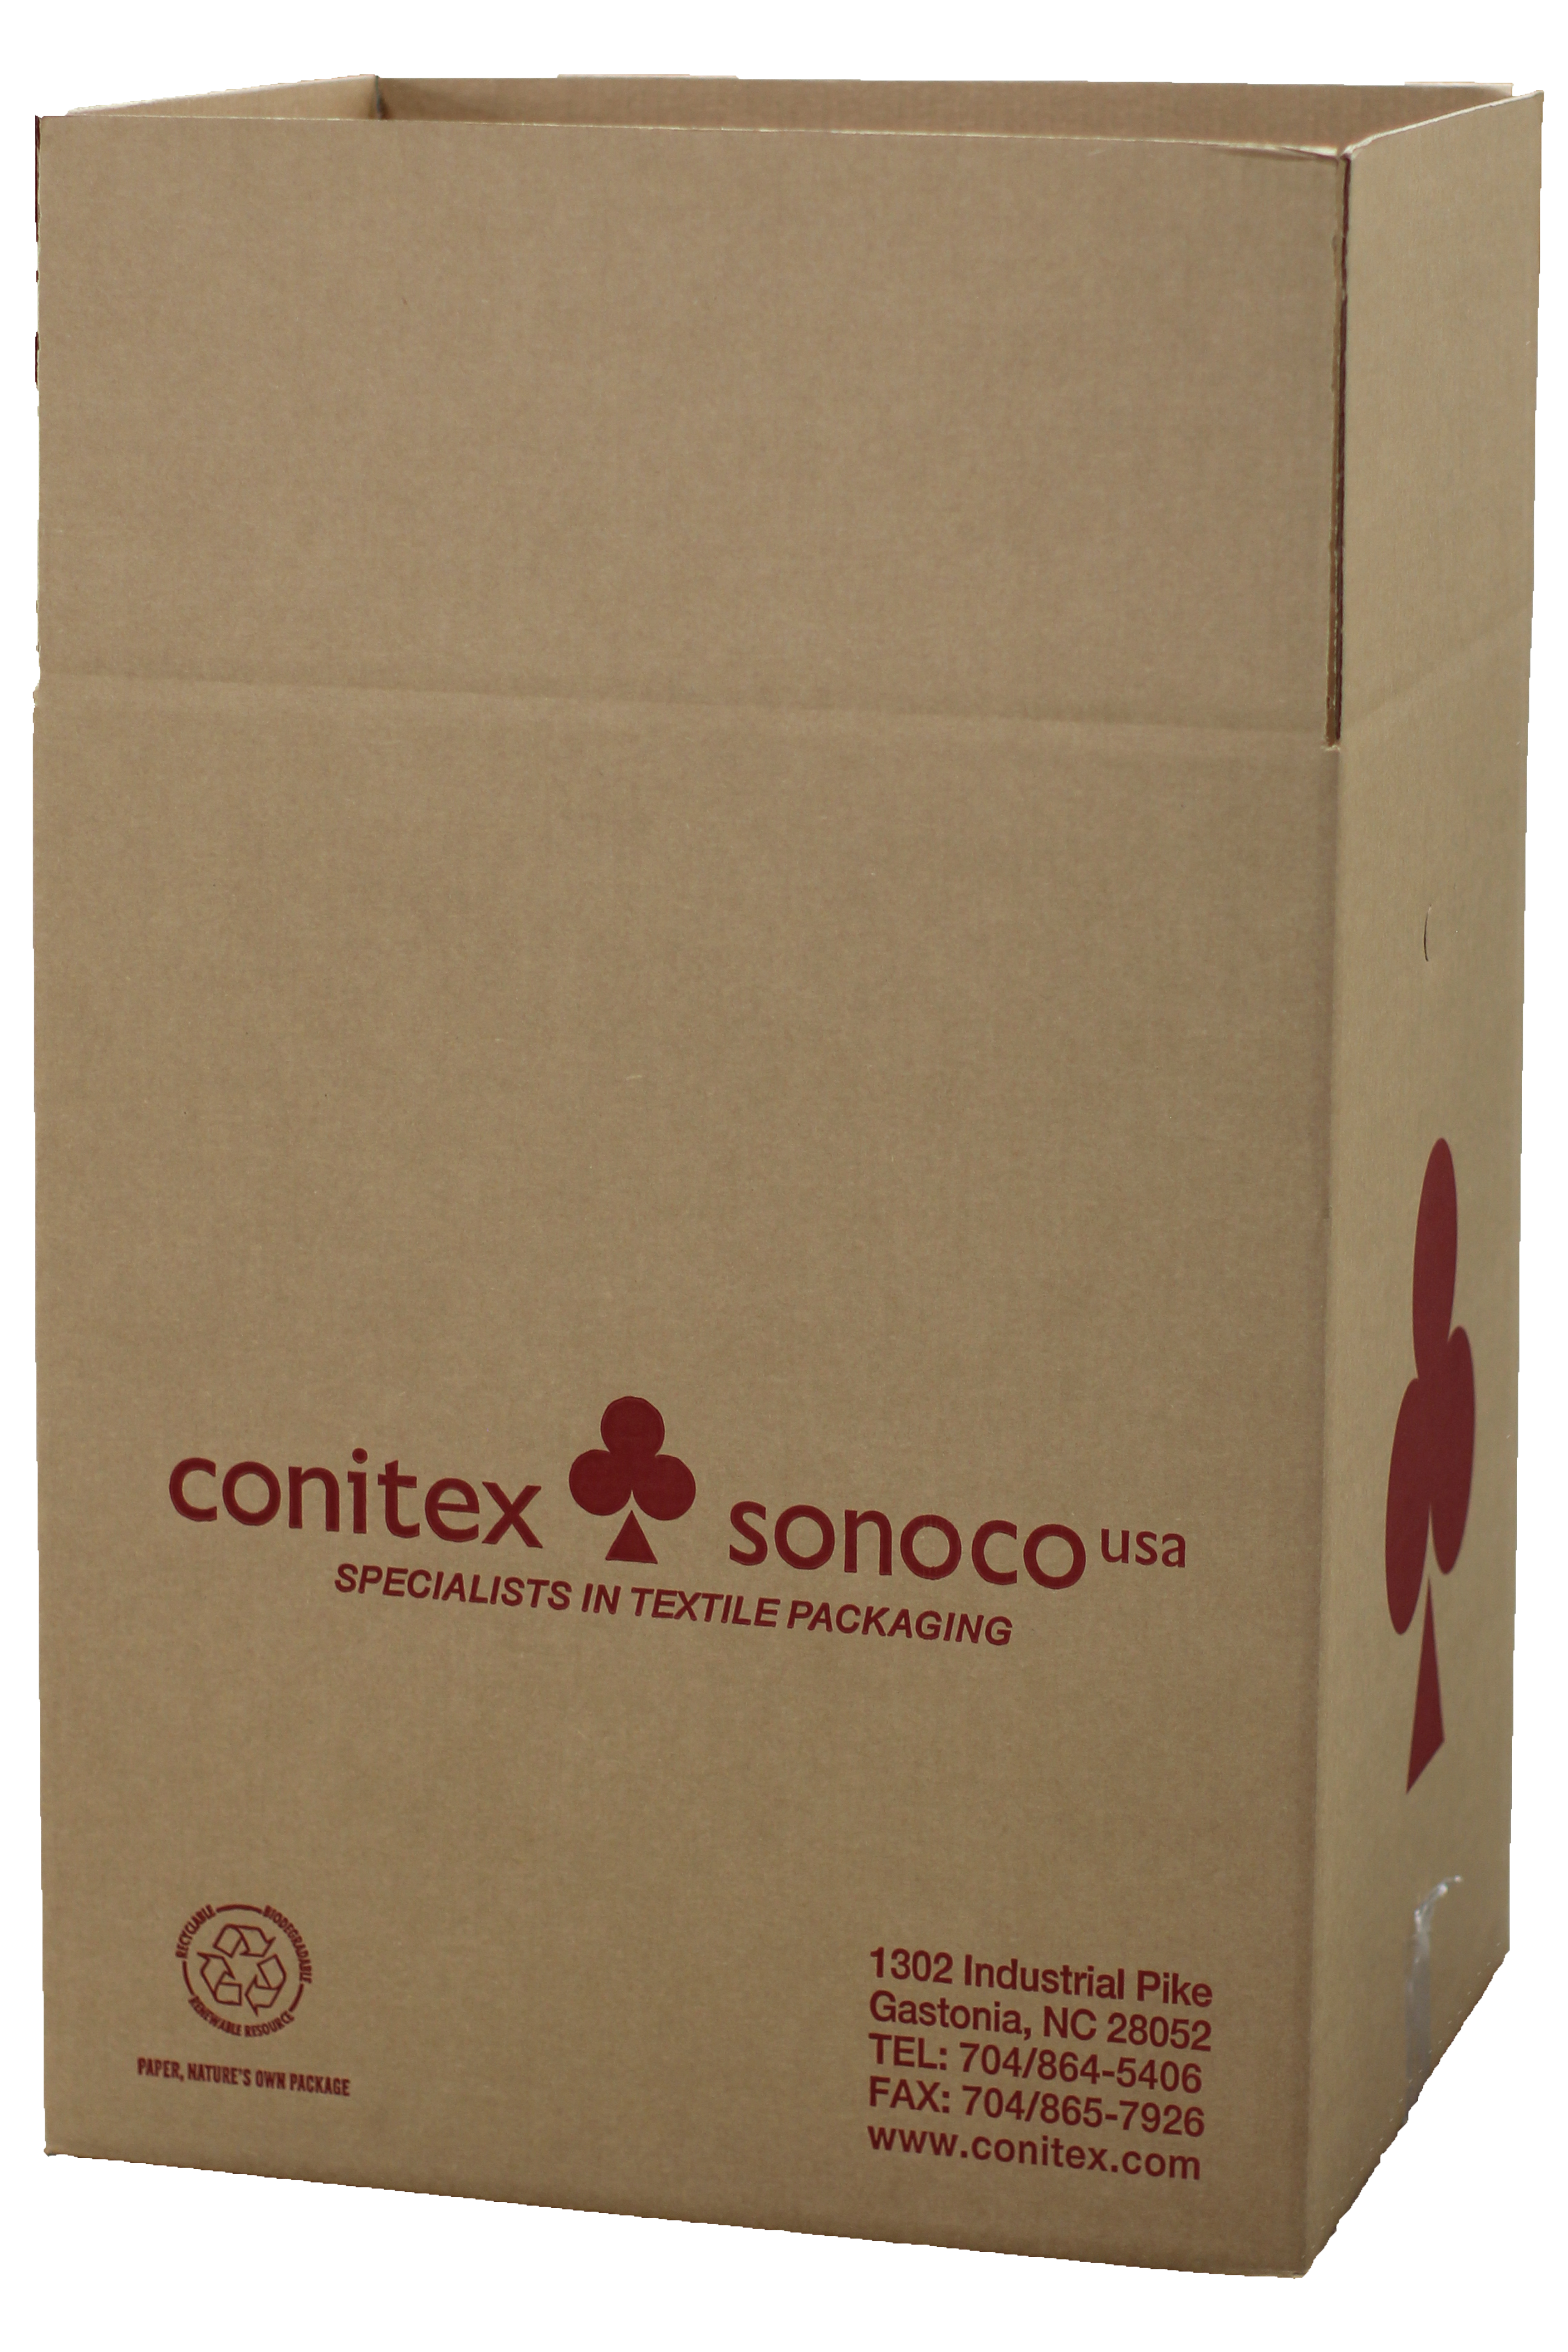 Cardboard Boxes   Conitex Sonoco   Packaging Products